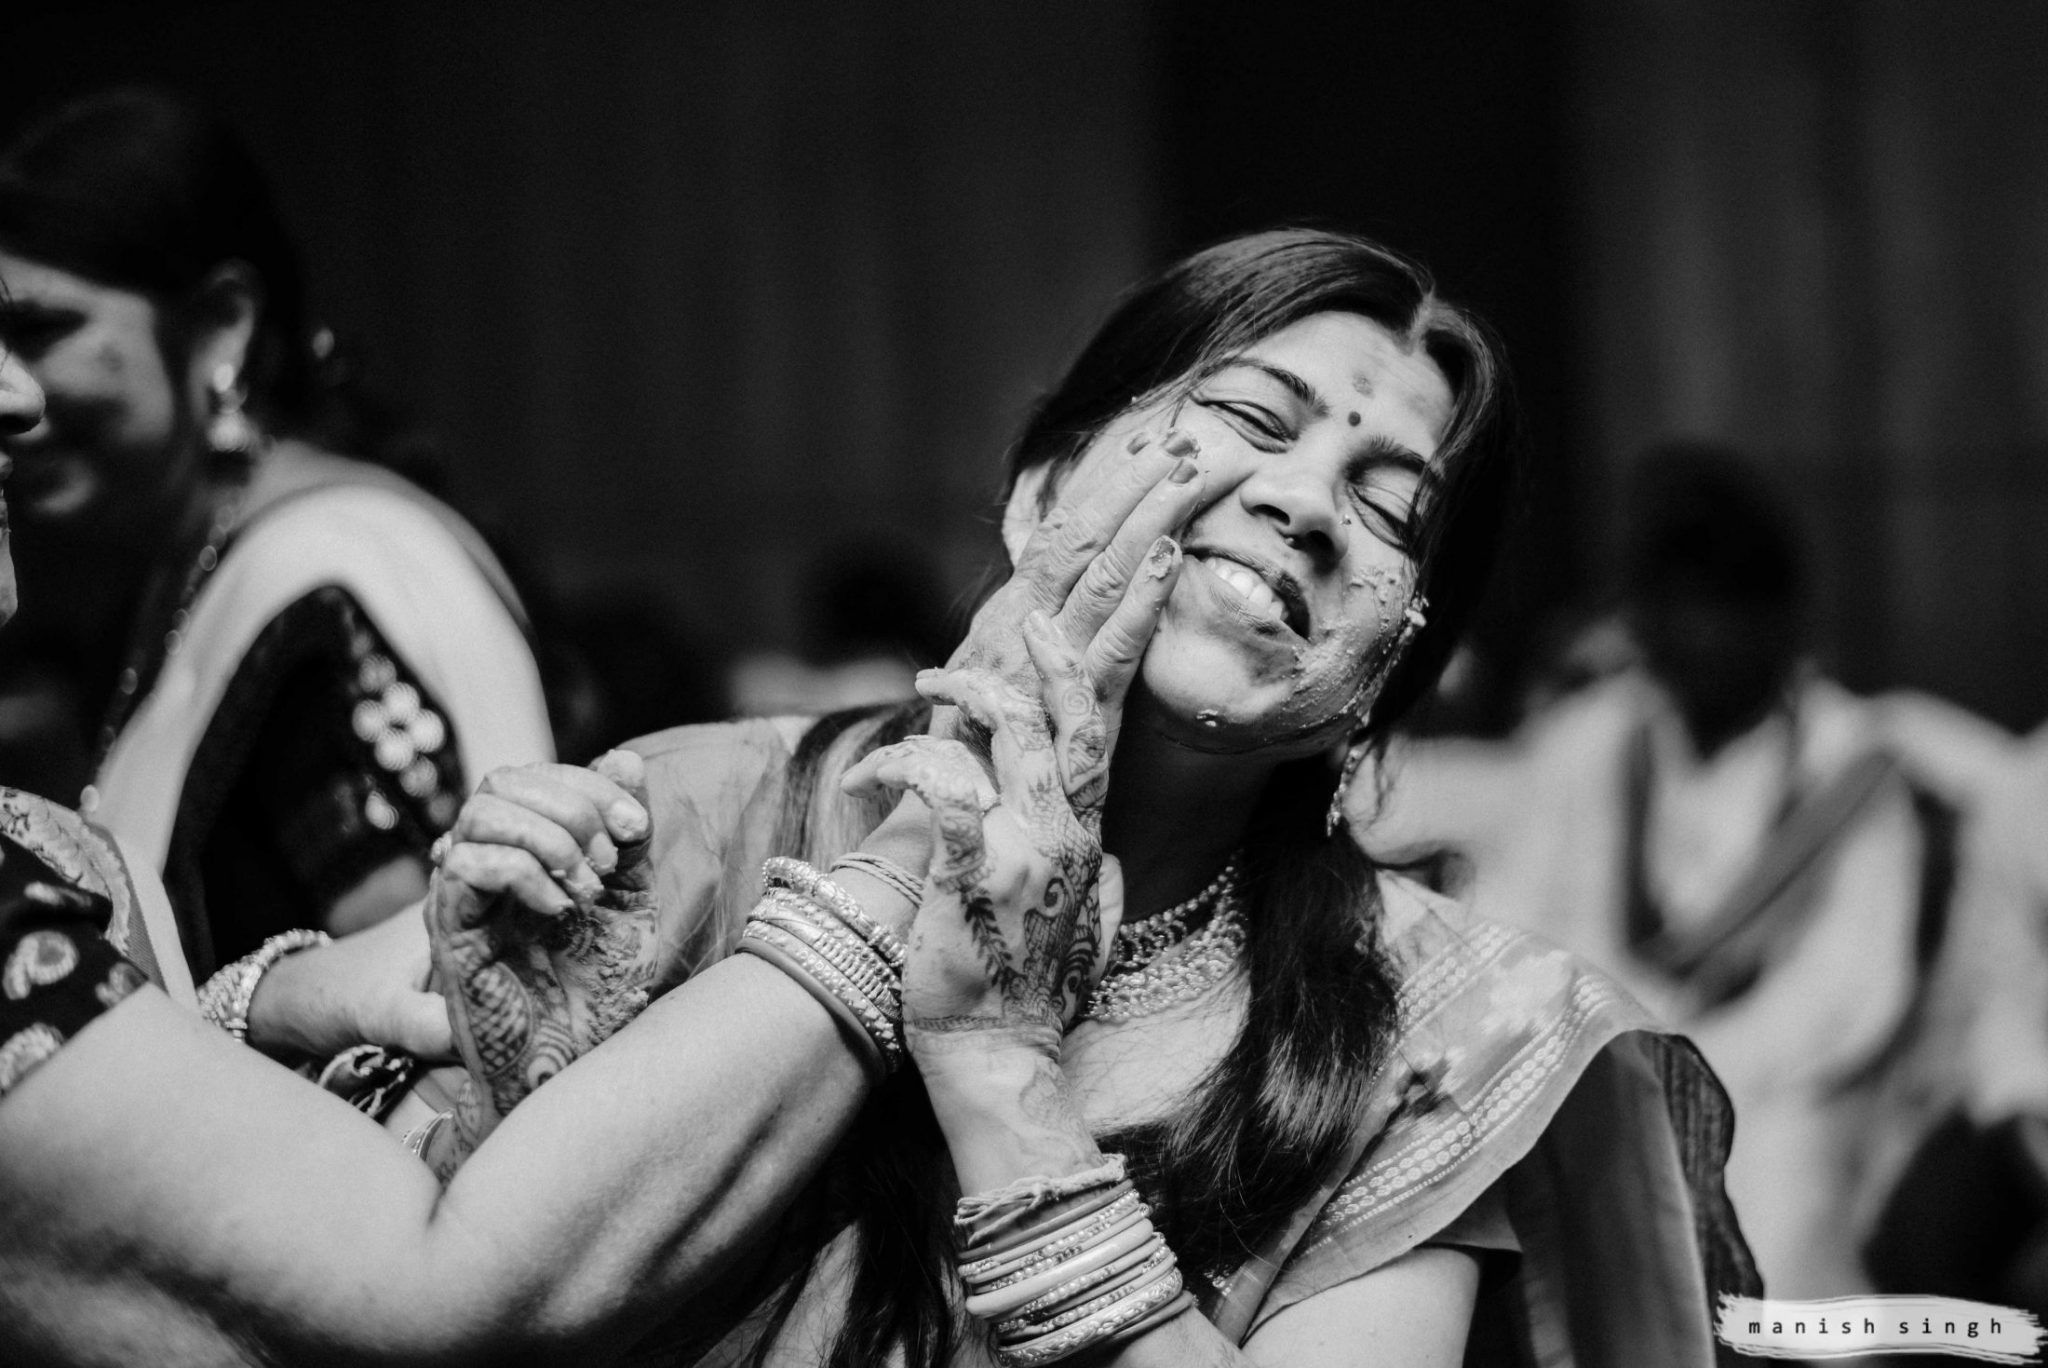 Haldi Ritual playful moments